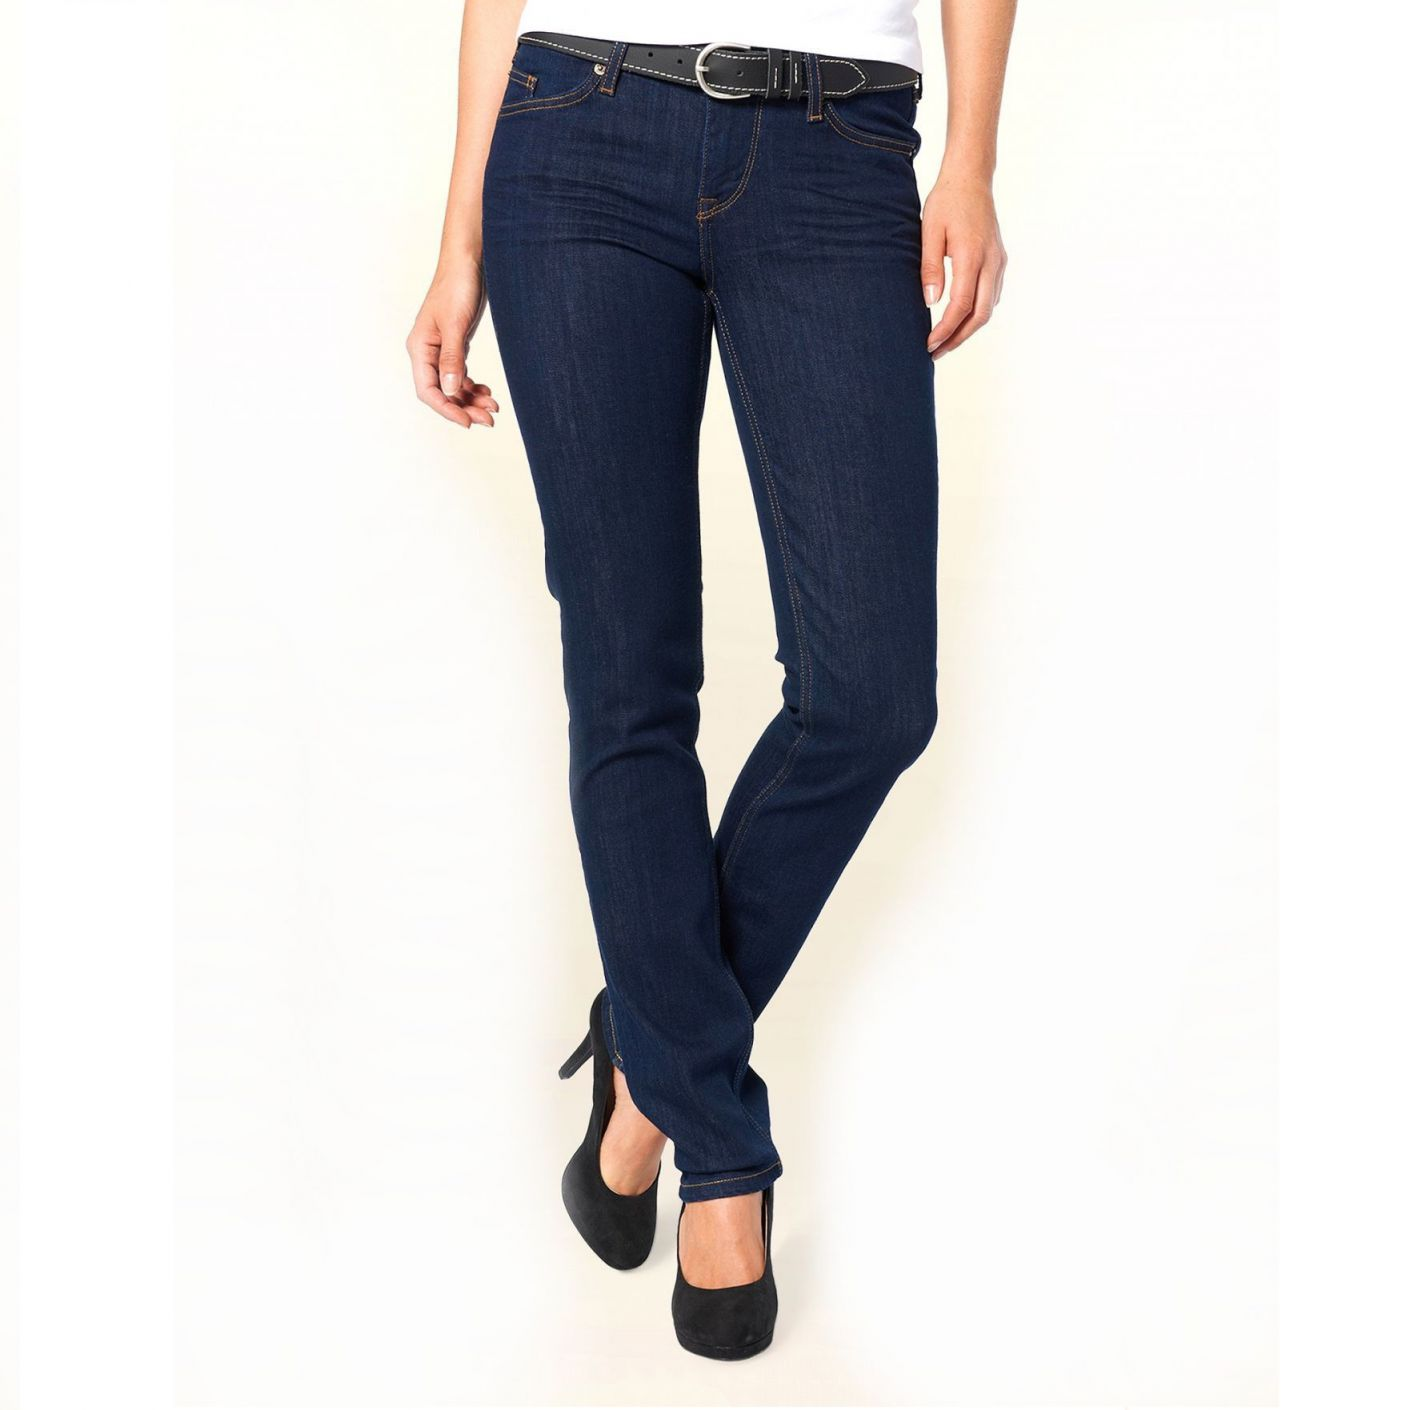 Mustang Jeans Jasmin Rinse Washed 586-5038-590 26-34